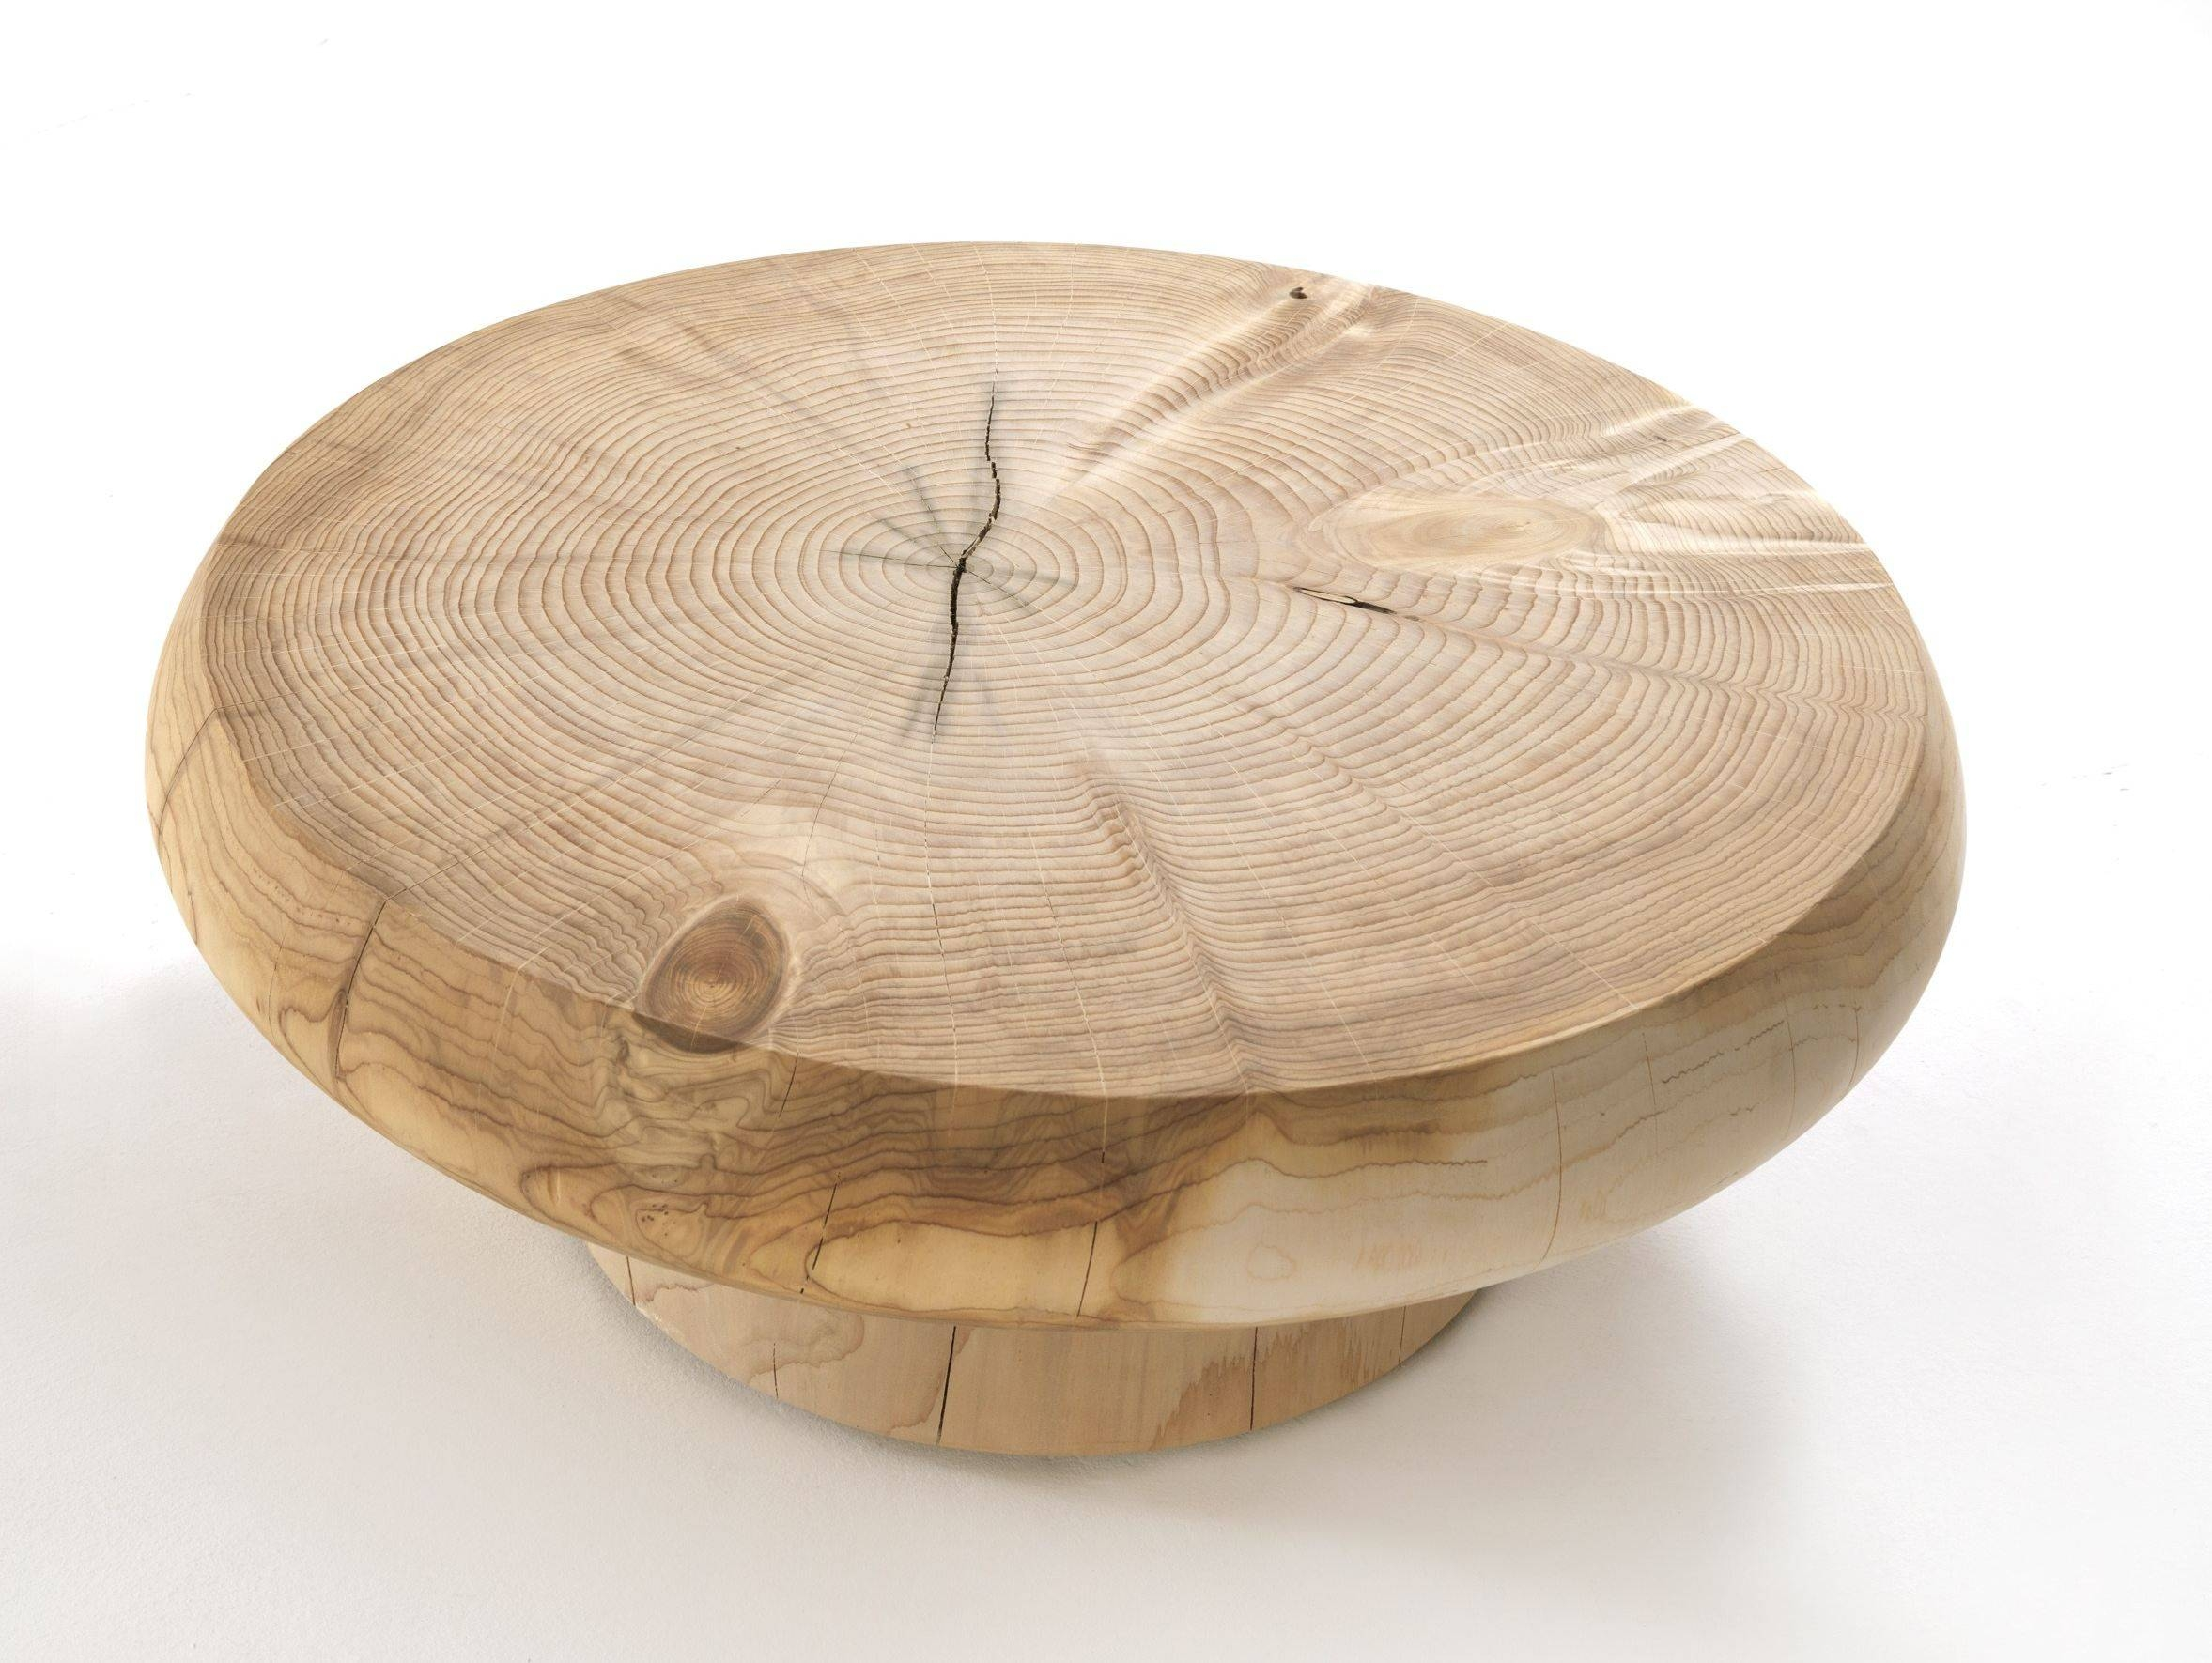 Custom Solid Wood Low Round Coffe Table With Base For Living Room within Low Square Wooden Coffee Tables (Image 12 of 30)